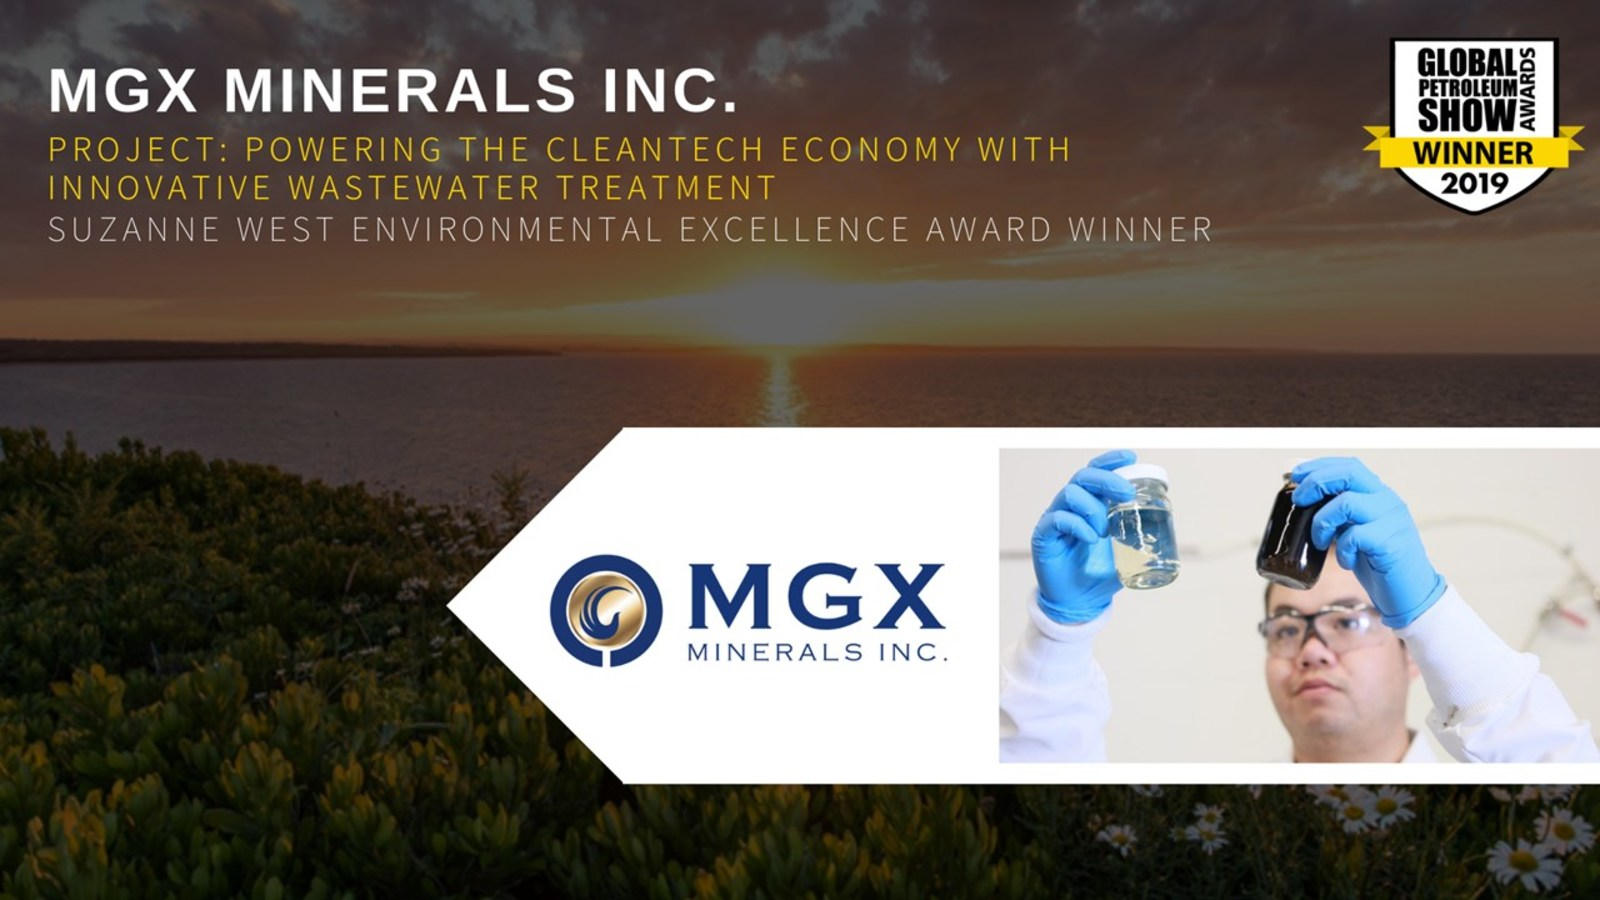 MGX MINERALS INC. - PROJECT: POWERING THE CLEANTECH ECONOMY WITH INNOVATIVE WASTEWATER TREATMENT - SUZANNE WEST ENVIRONMENTAL EXCELLENCE AWARD WINNER